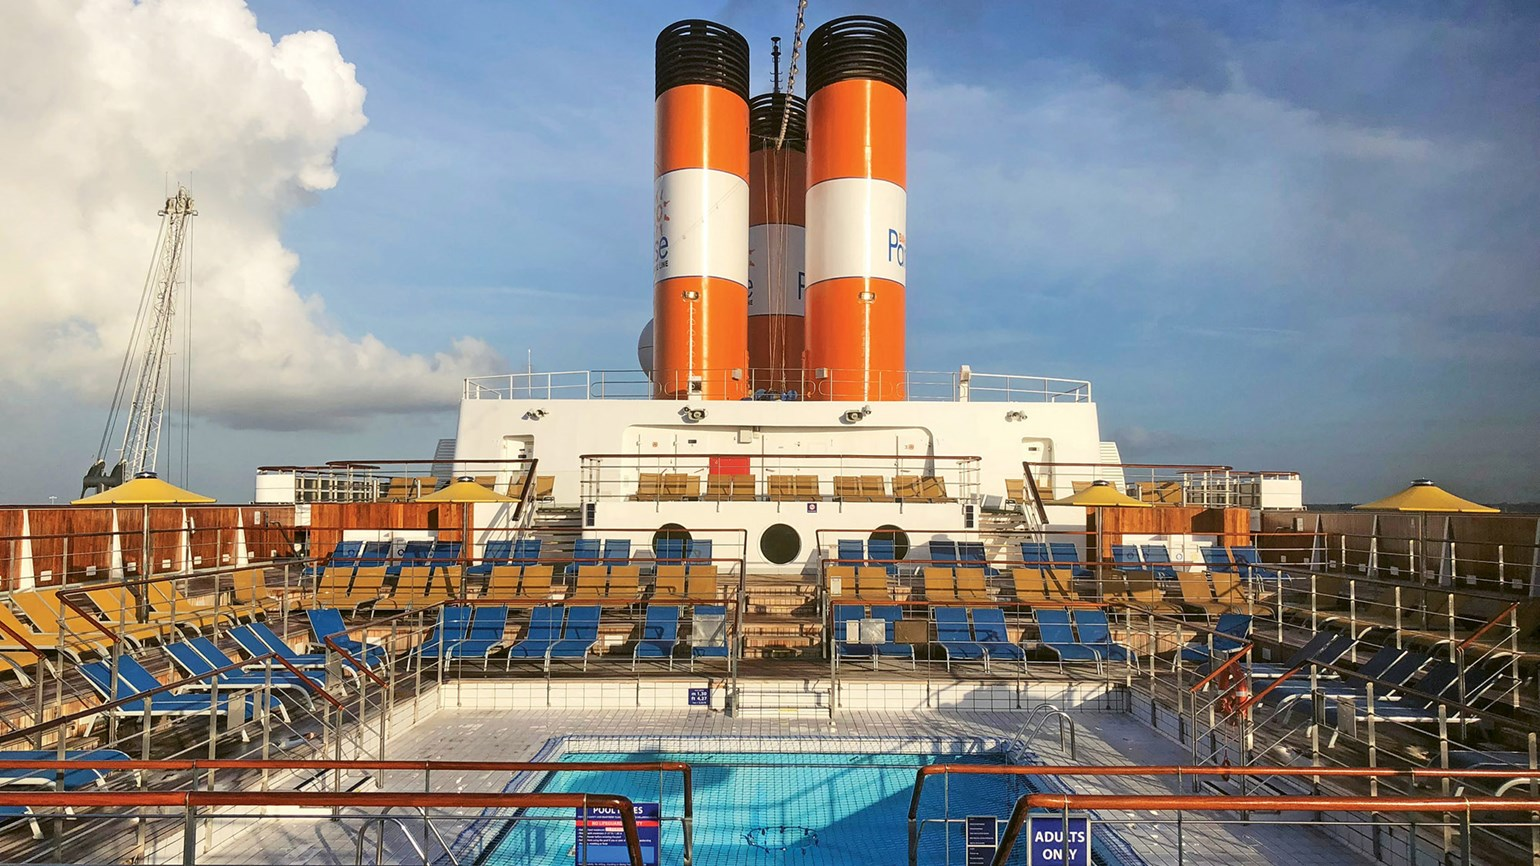 Bahamas Paradise doing Cuba cruise with two Havana stops